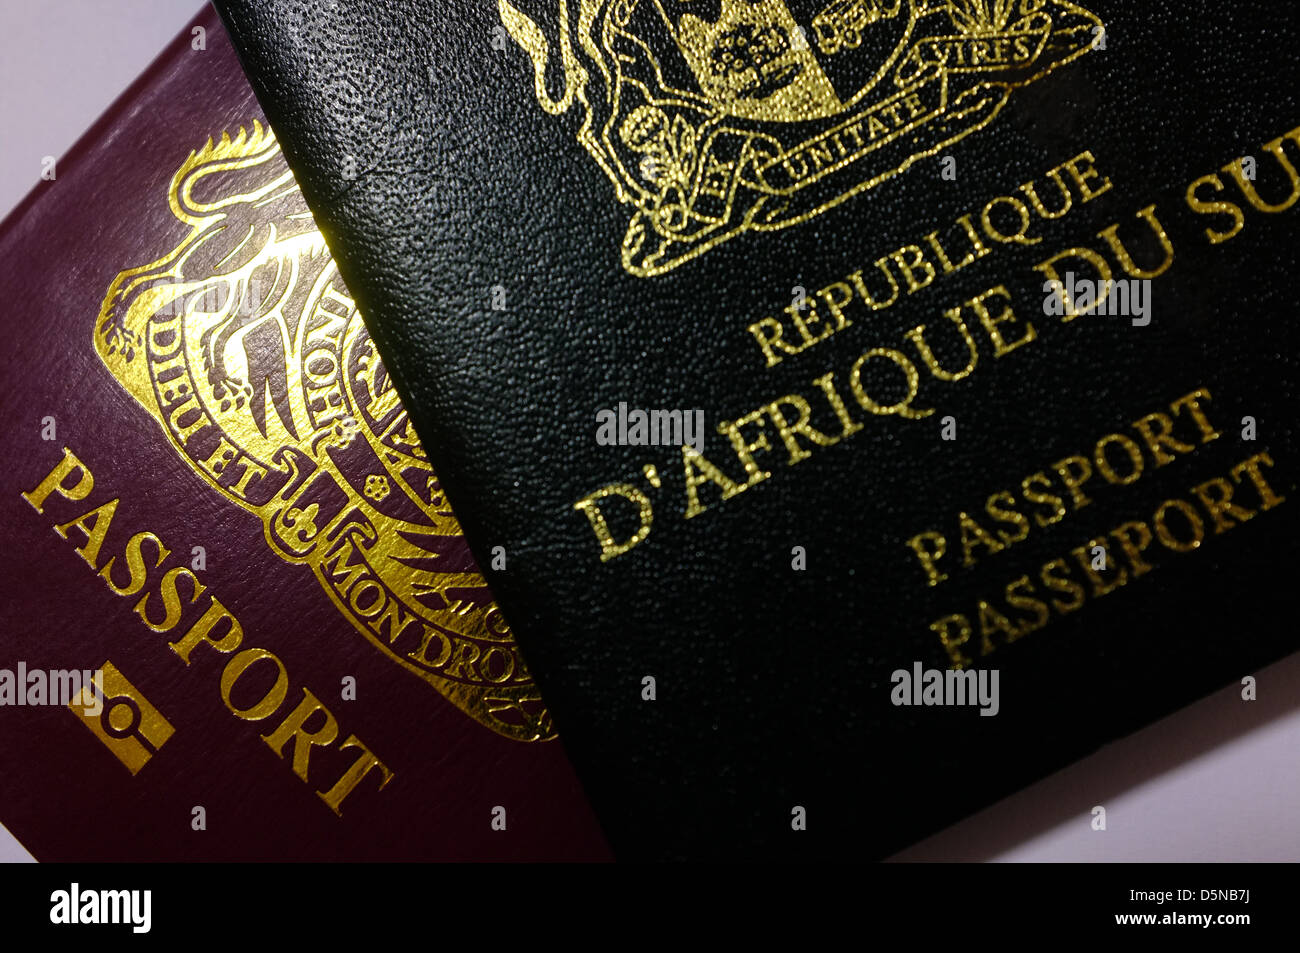 An Image Of A South African And A British Passport Together How To Get